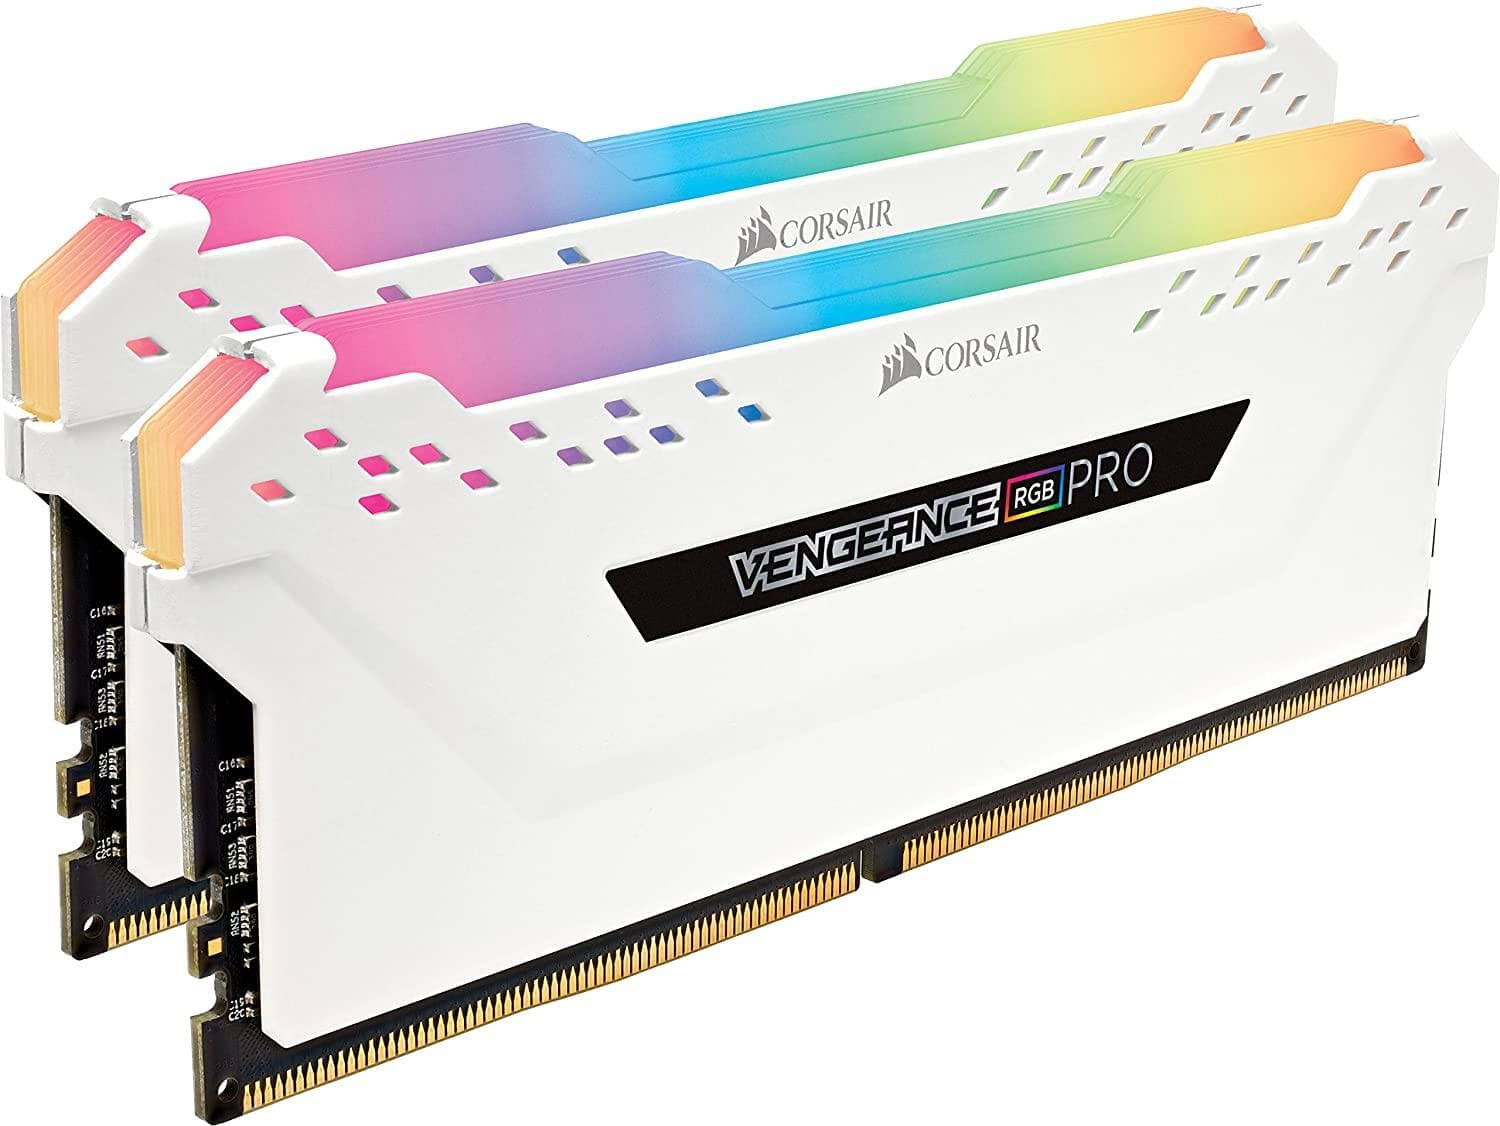 CORSAIR VENGEANCE RGB PRO 16GB (2x8GB) DDR4 3200MHz C16 LED Desktop Memory (White) - $84.99 + FS